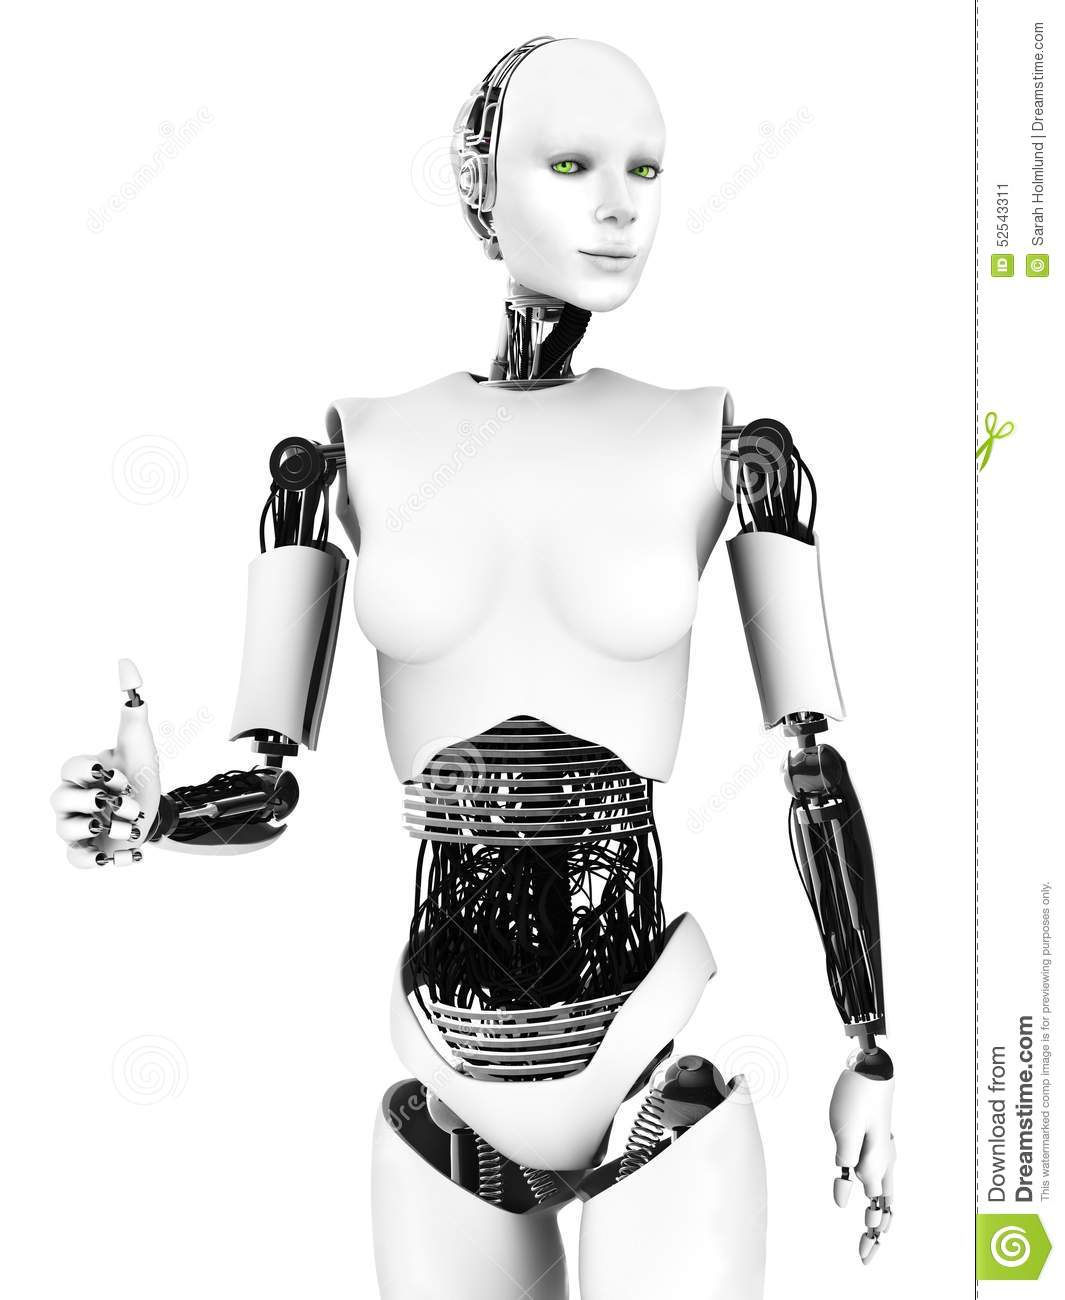 Robot Woman Doing A Thumbs Up. Stock Illustration - Image ...